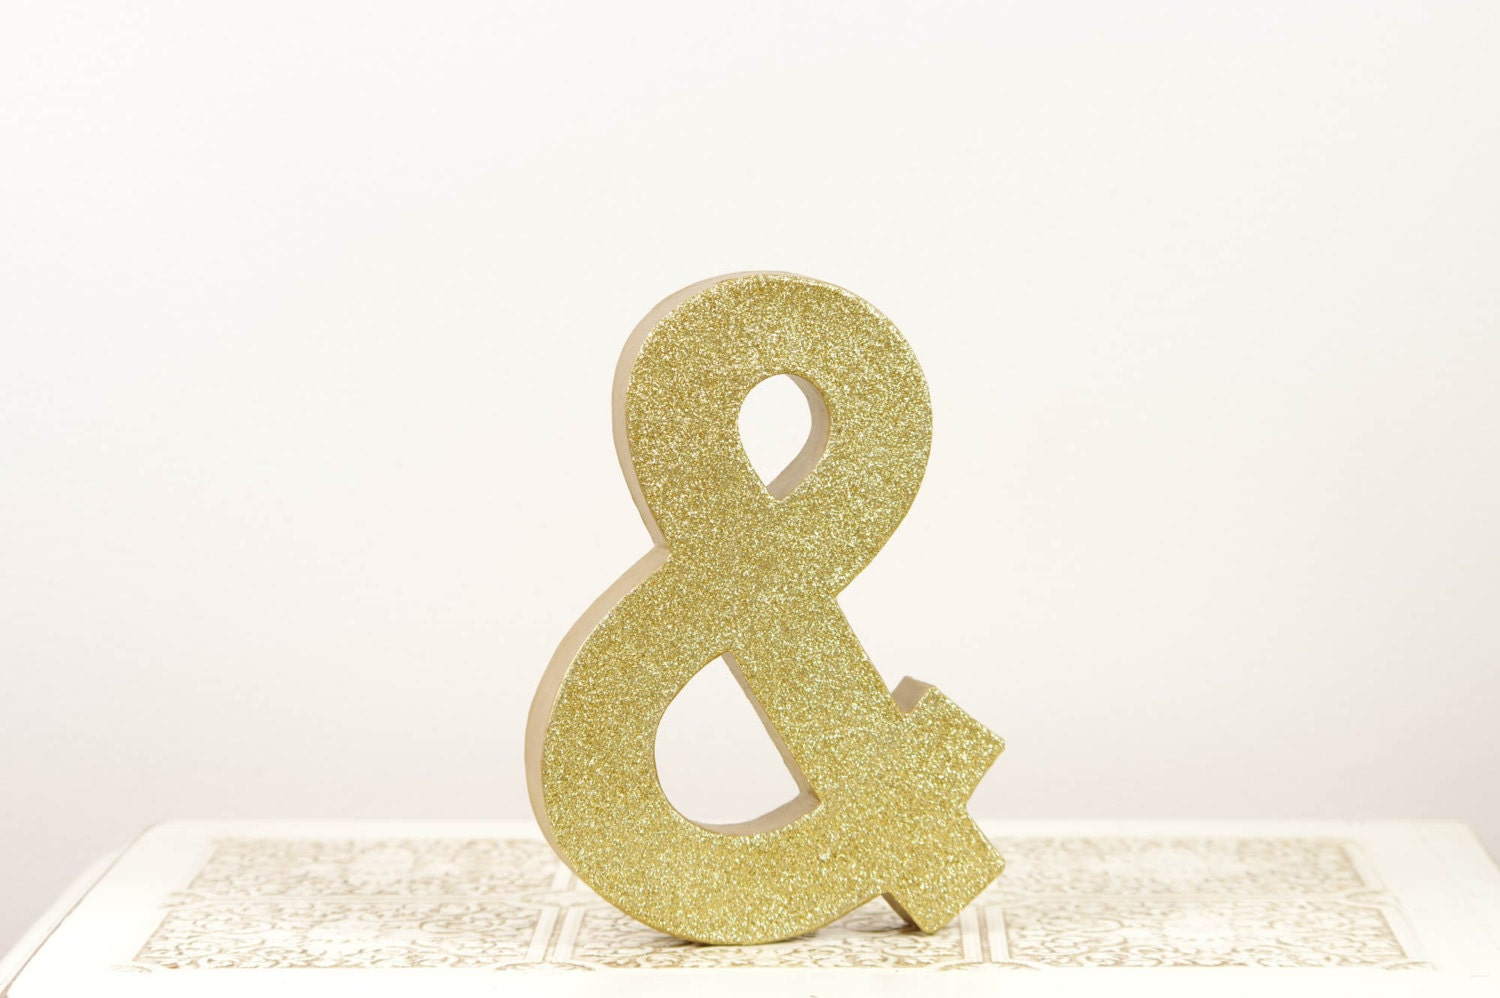 Gold glitter ampersand sign wedding decor photography prop for Ampersand decoration etsy